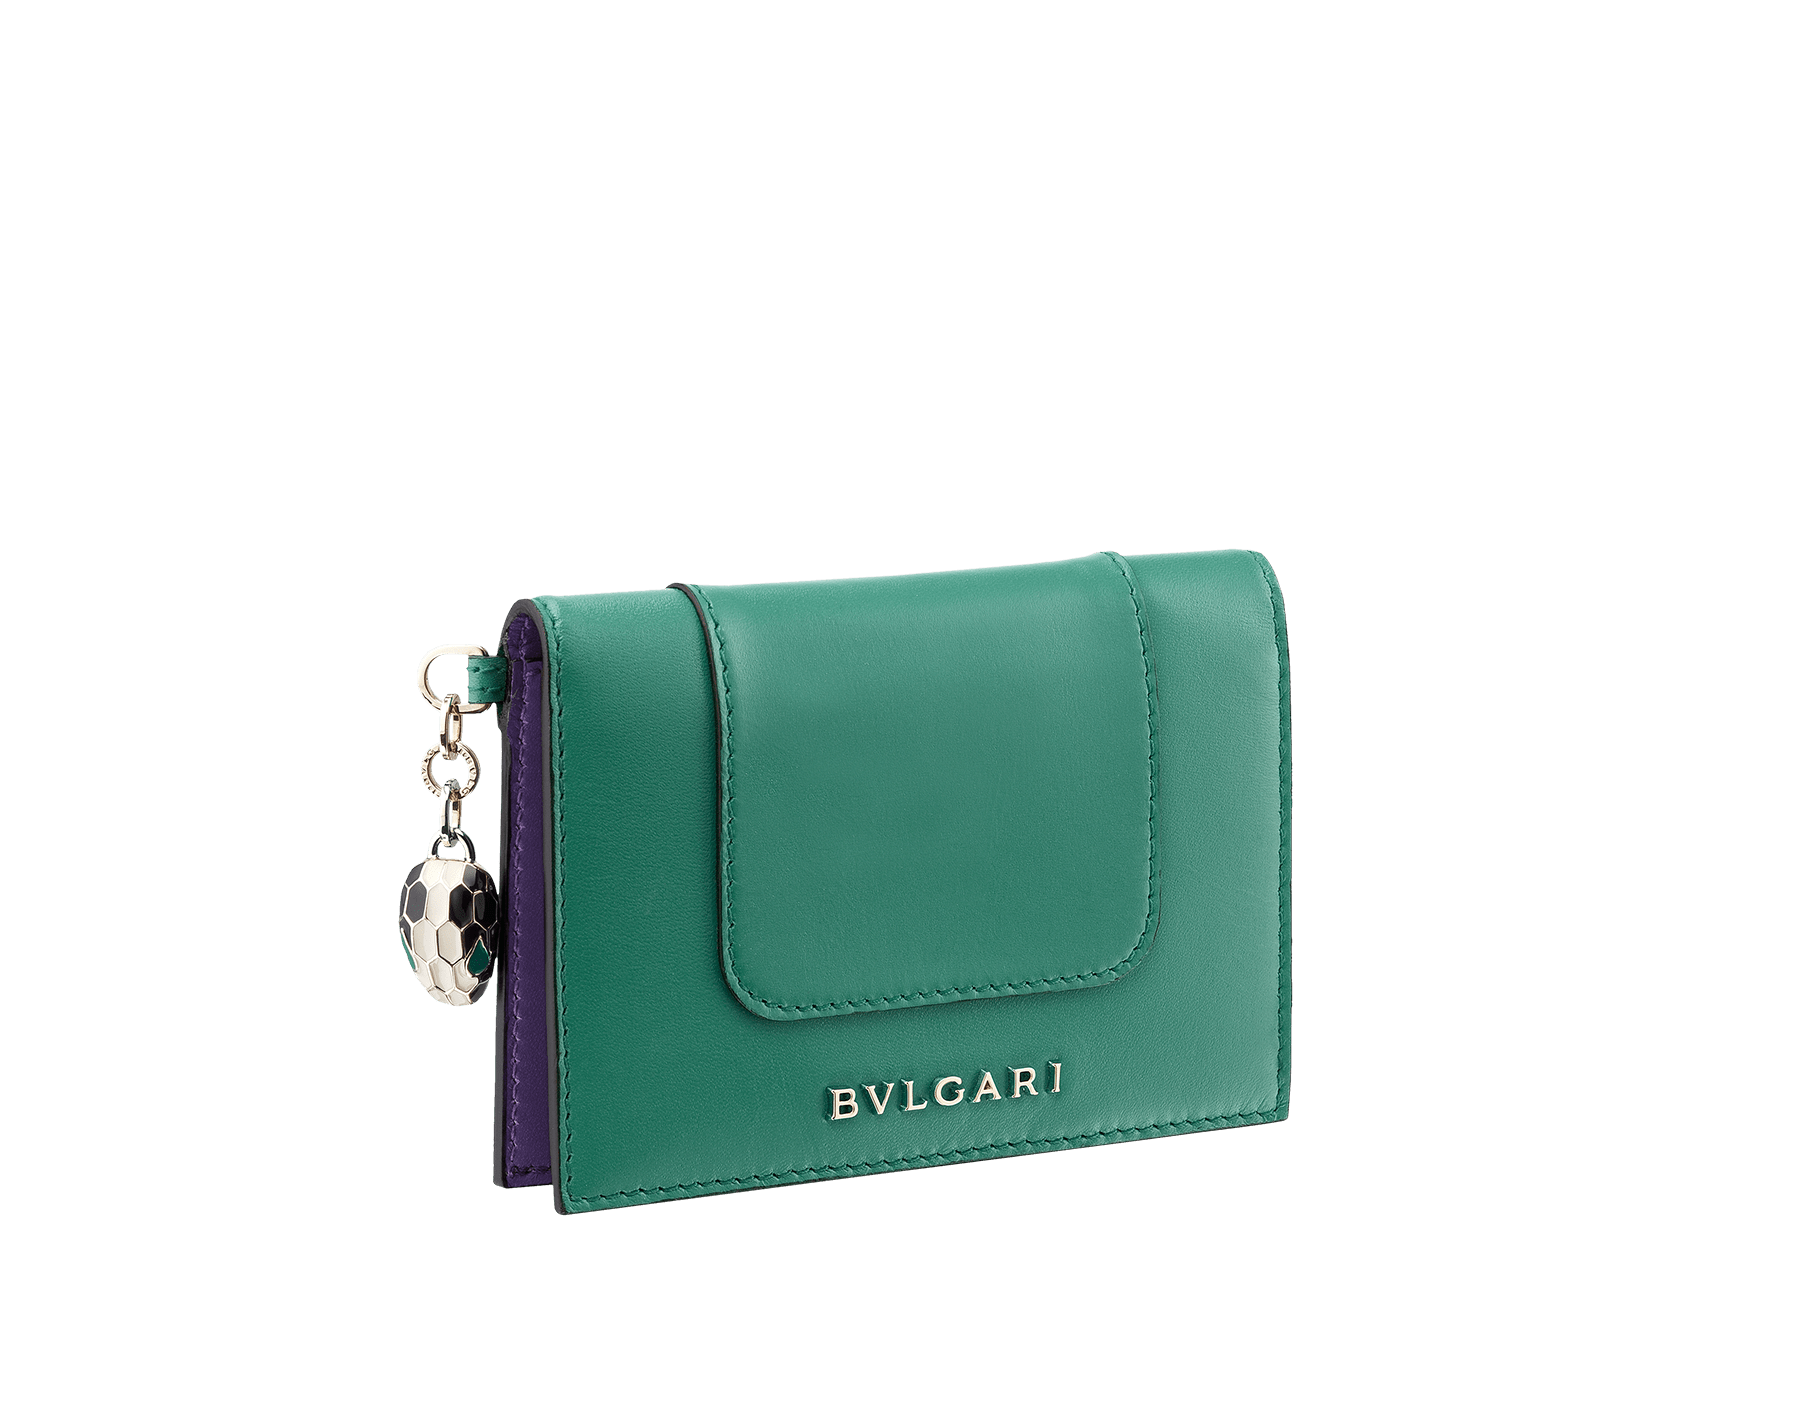 Serpenti Forever folded credit card holder in crystal rose calf leather. Iconic snakehead charm in black and white enamel, with green malachite enamel eyes. SEA-CC-HOLDER-FOLD-CLb image 1